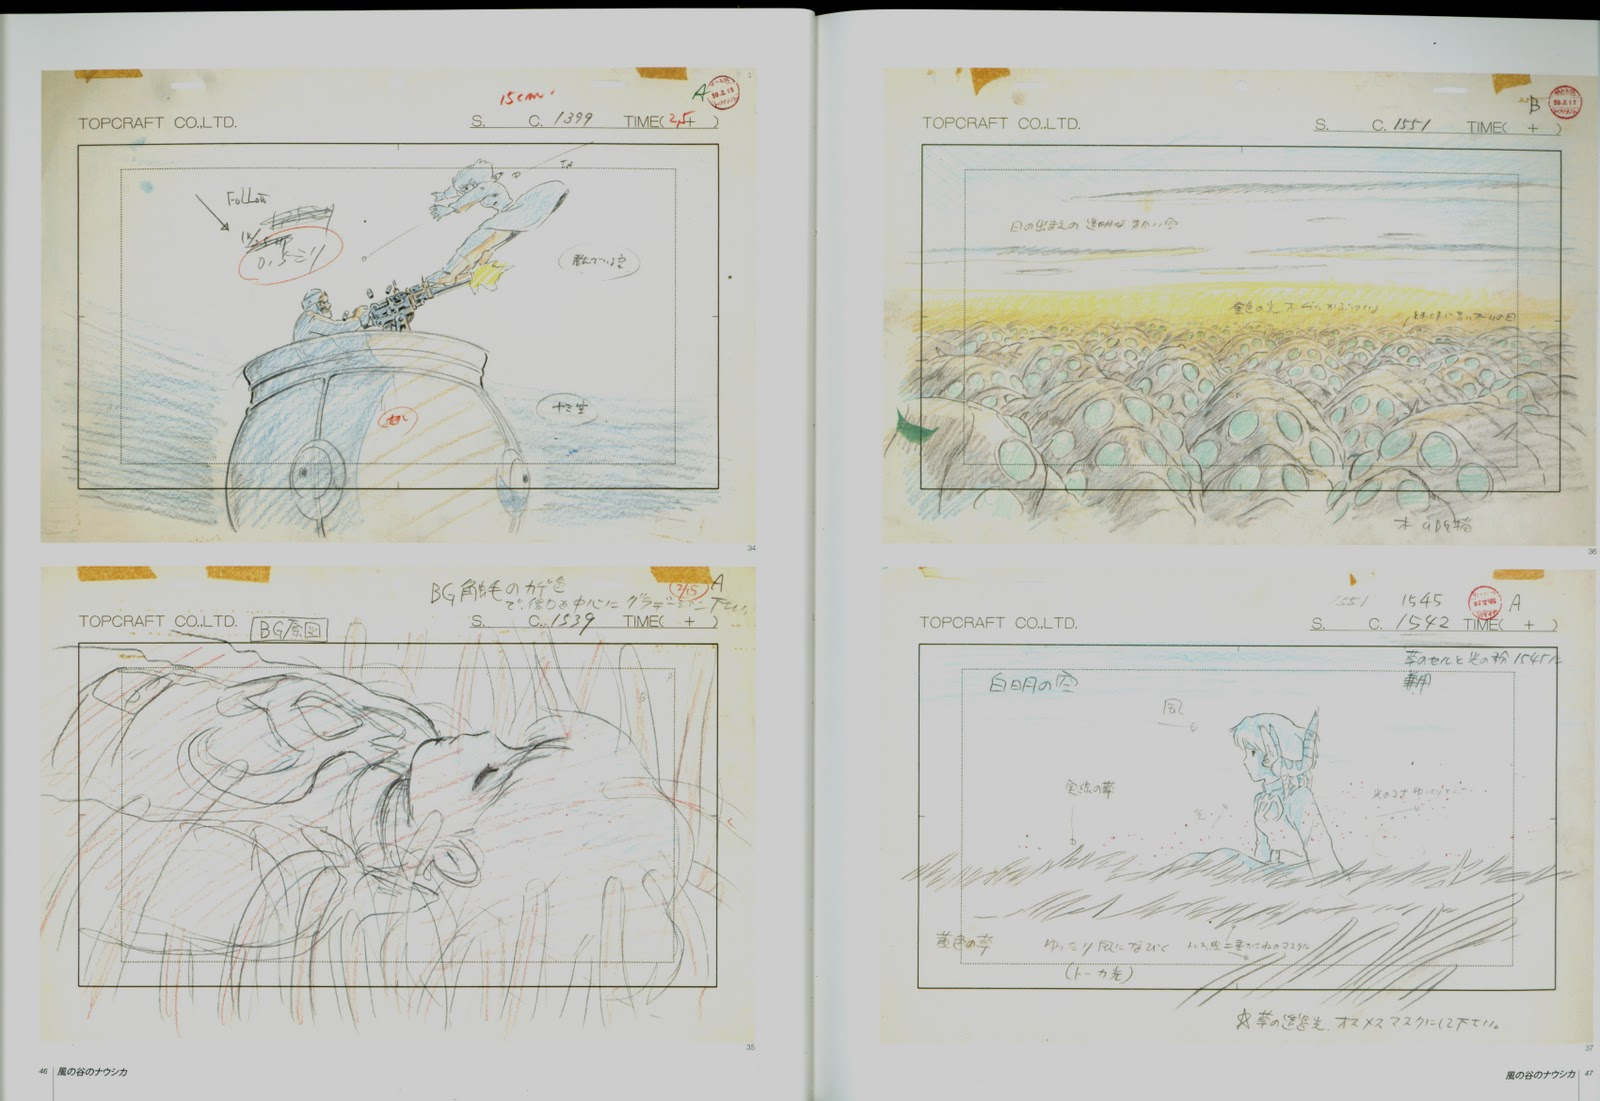 nausicaa_of_the_valley_of_the_wind_concept_art_storyboard_07.jpg